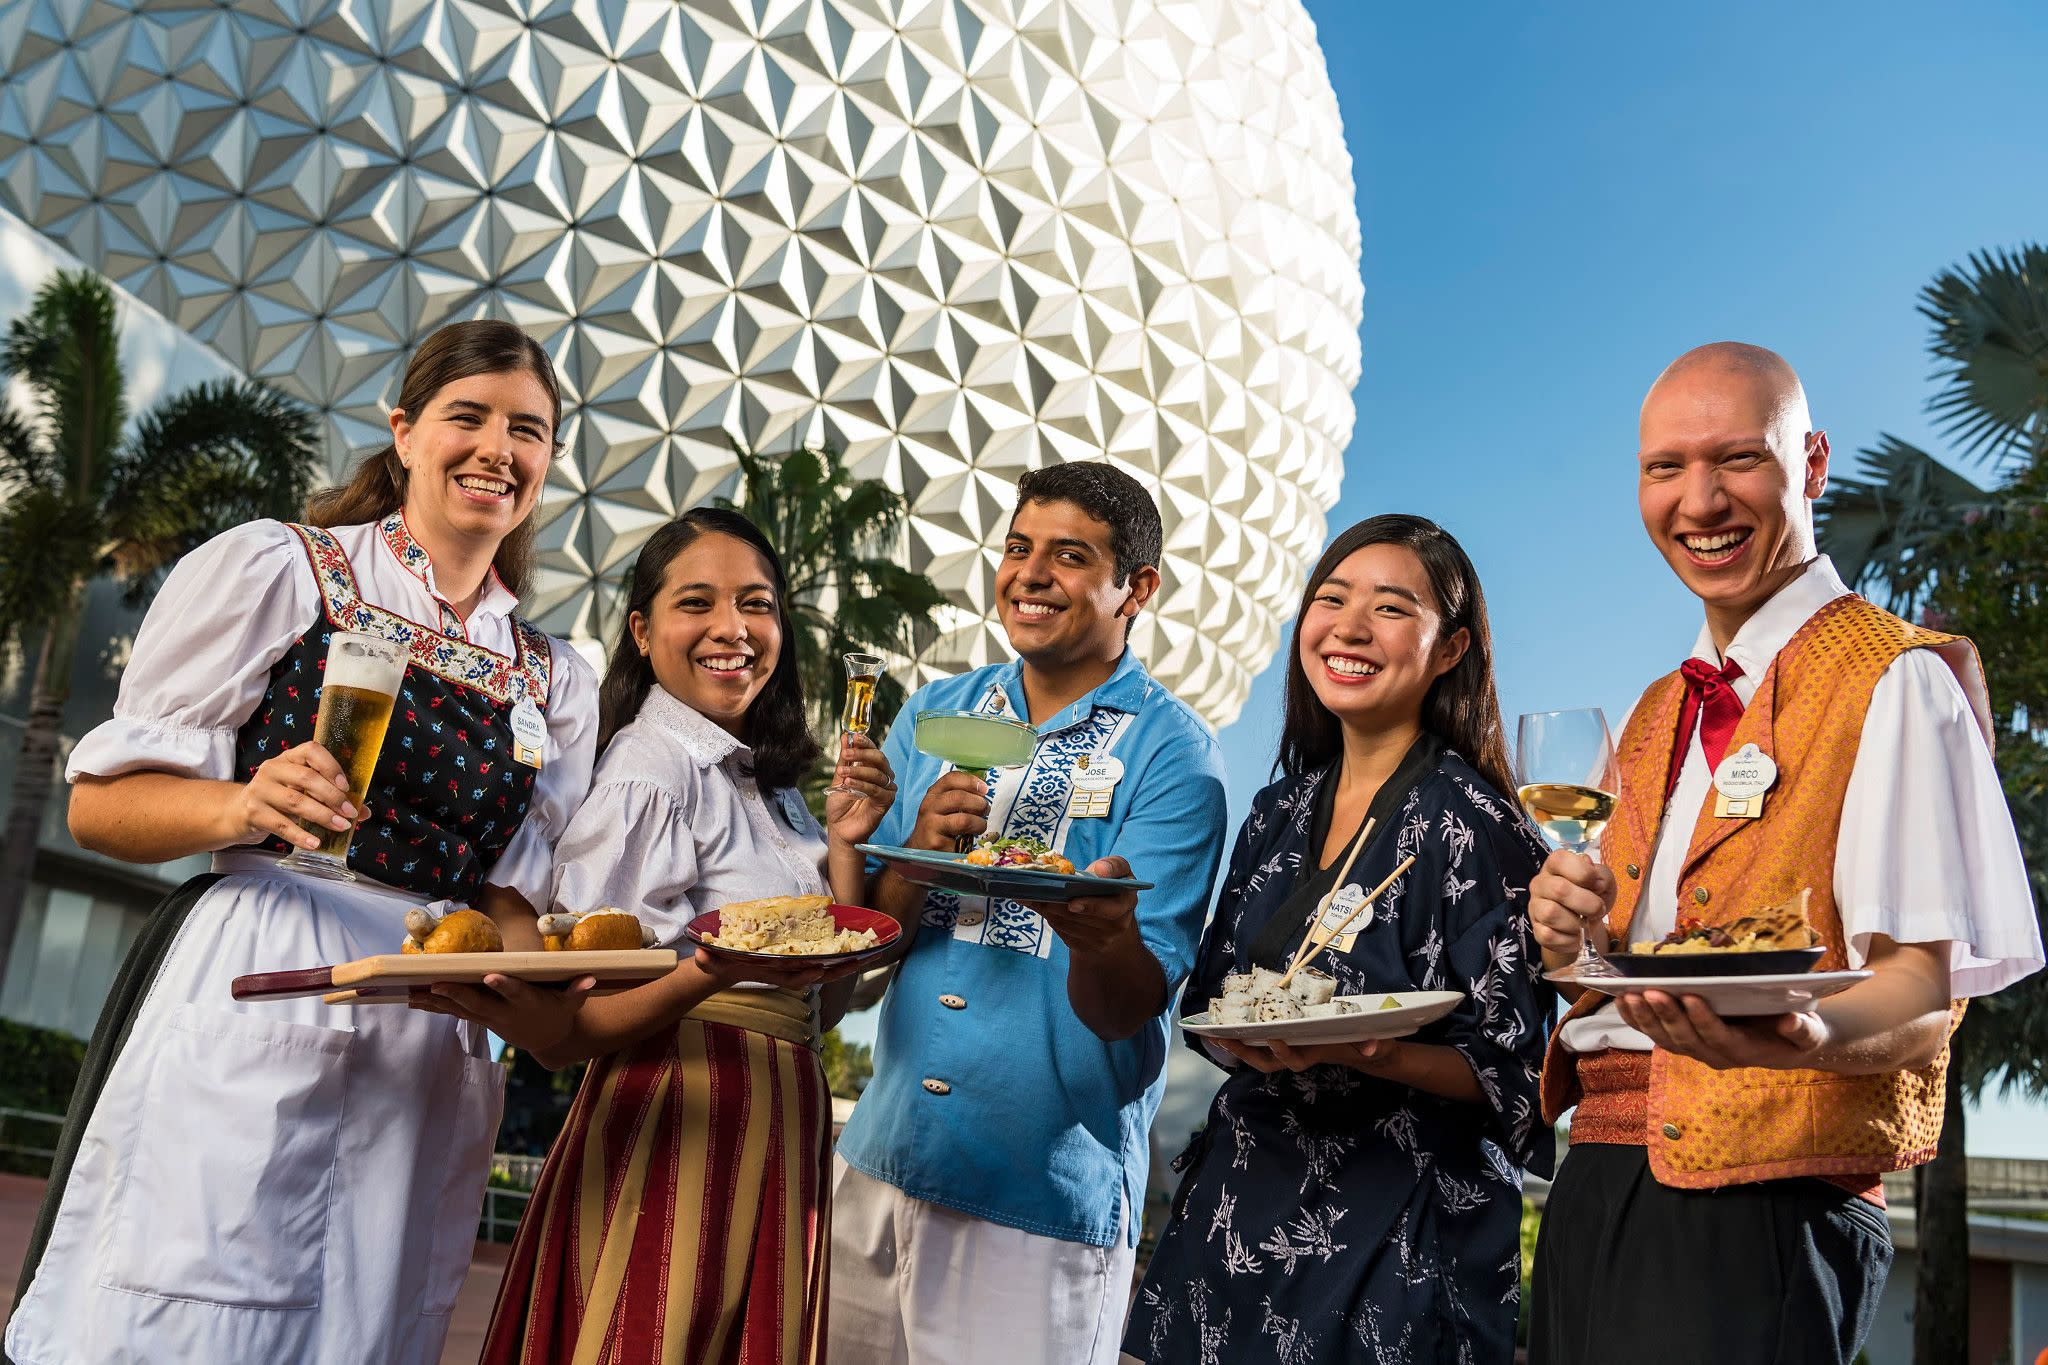 Epcot International Food & Wine Festival in Orlando